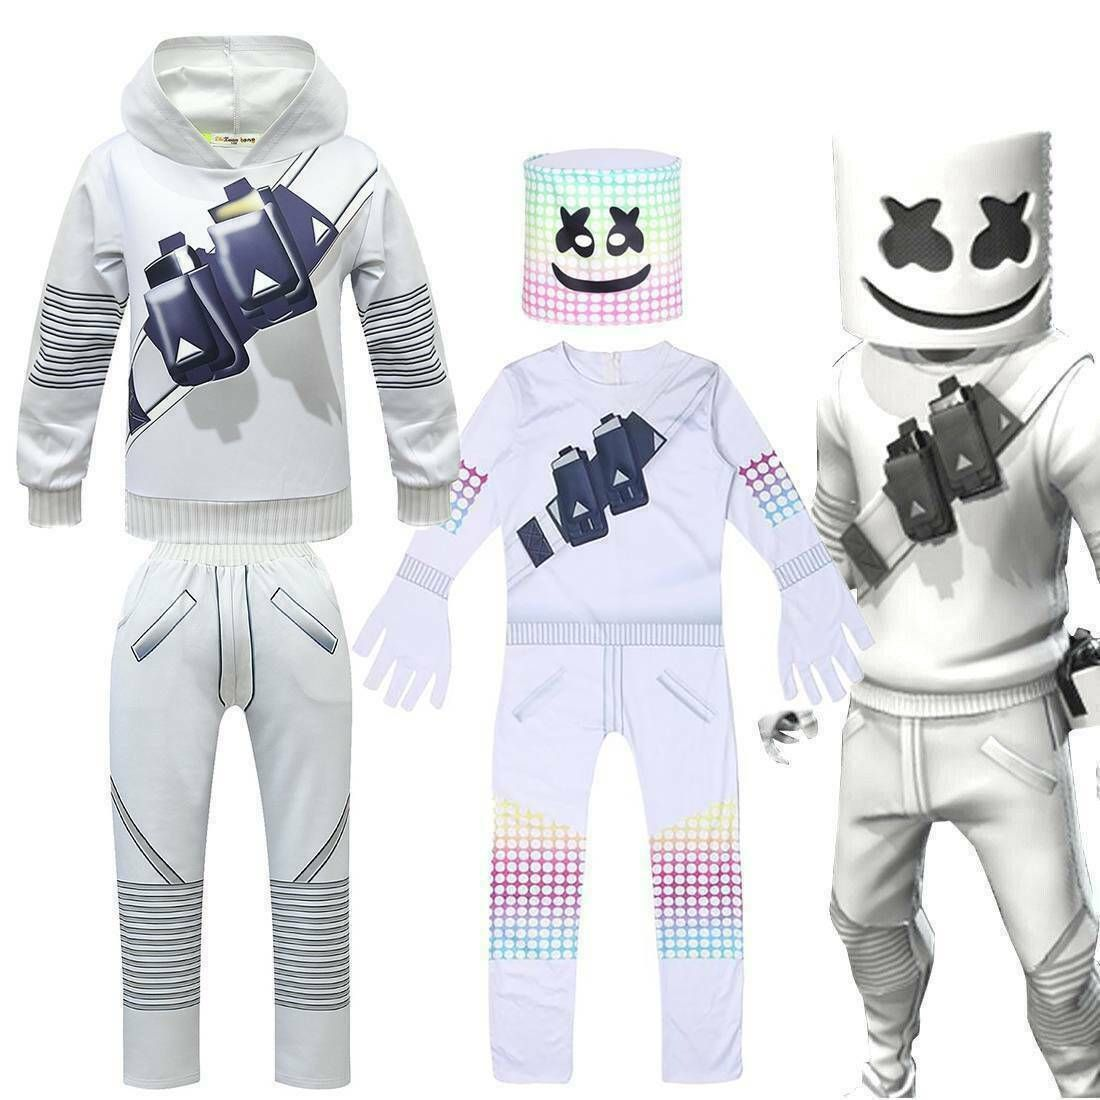 Kid MarshMello costumes Buy Now.Click the link for more